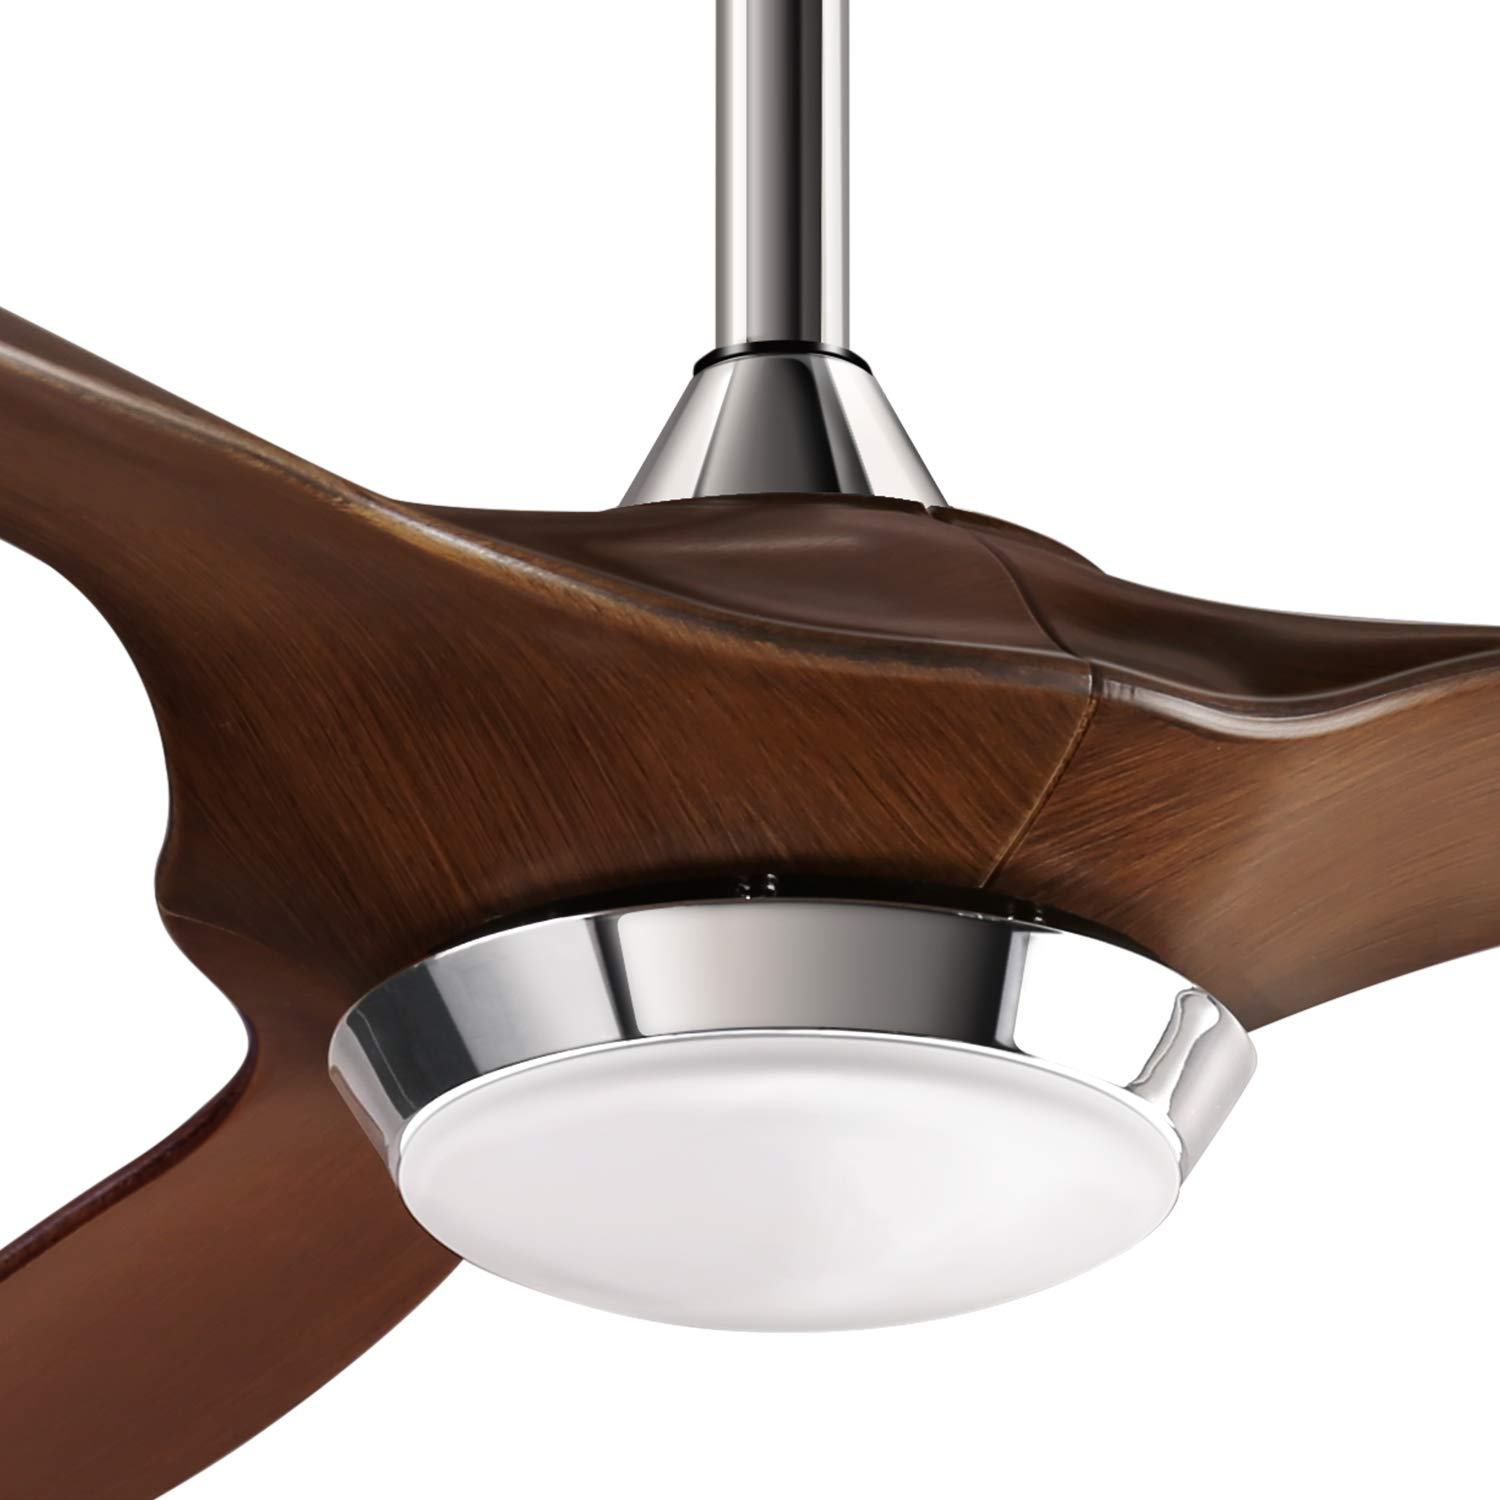 H/&Fun 52-in Ceiling Fan with LED Light Kit Remote Control Modern Blades Noiseless Reversible Motor hand-painted